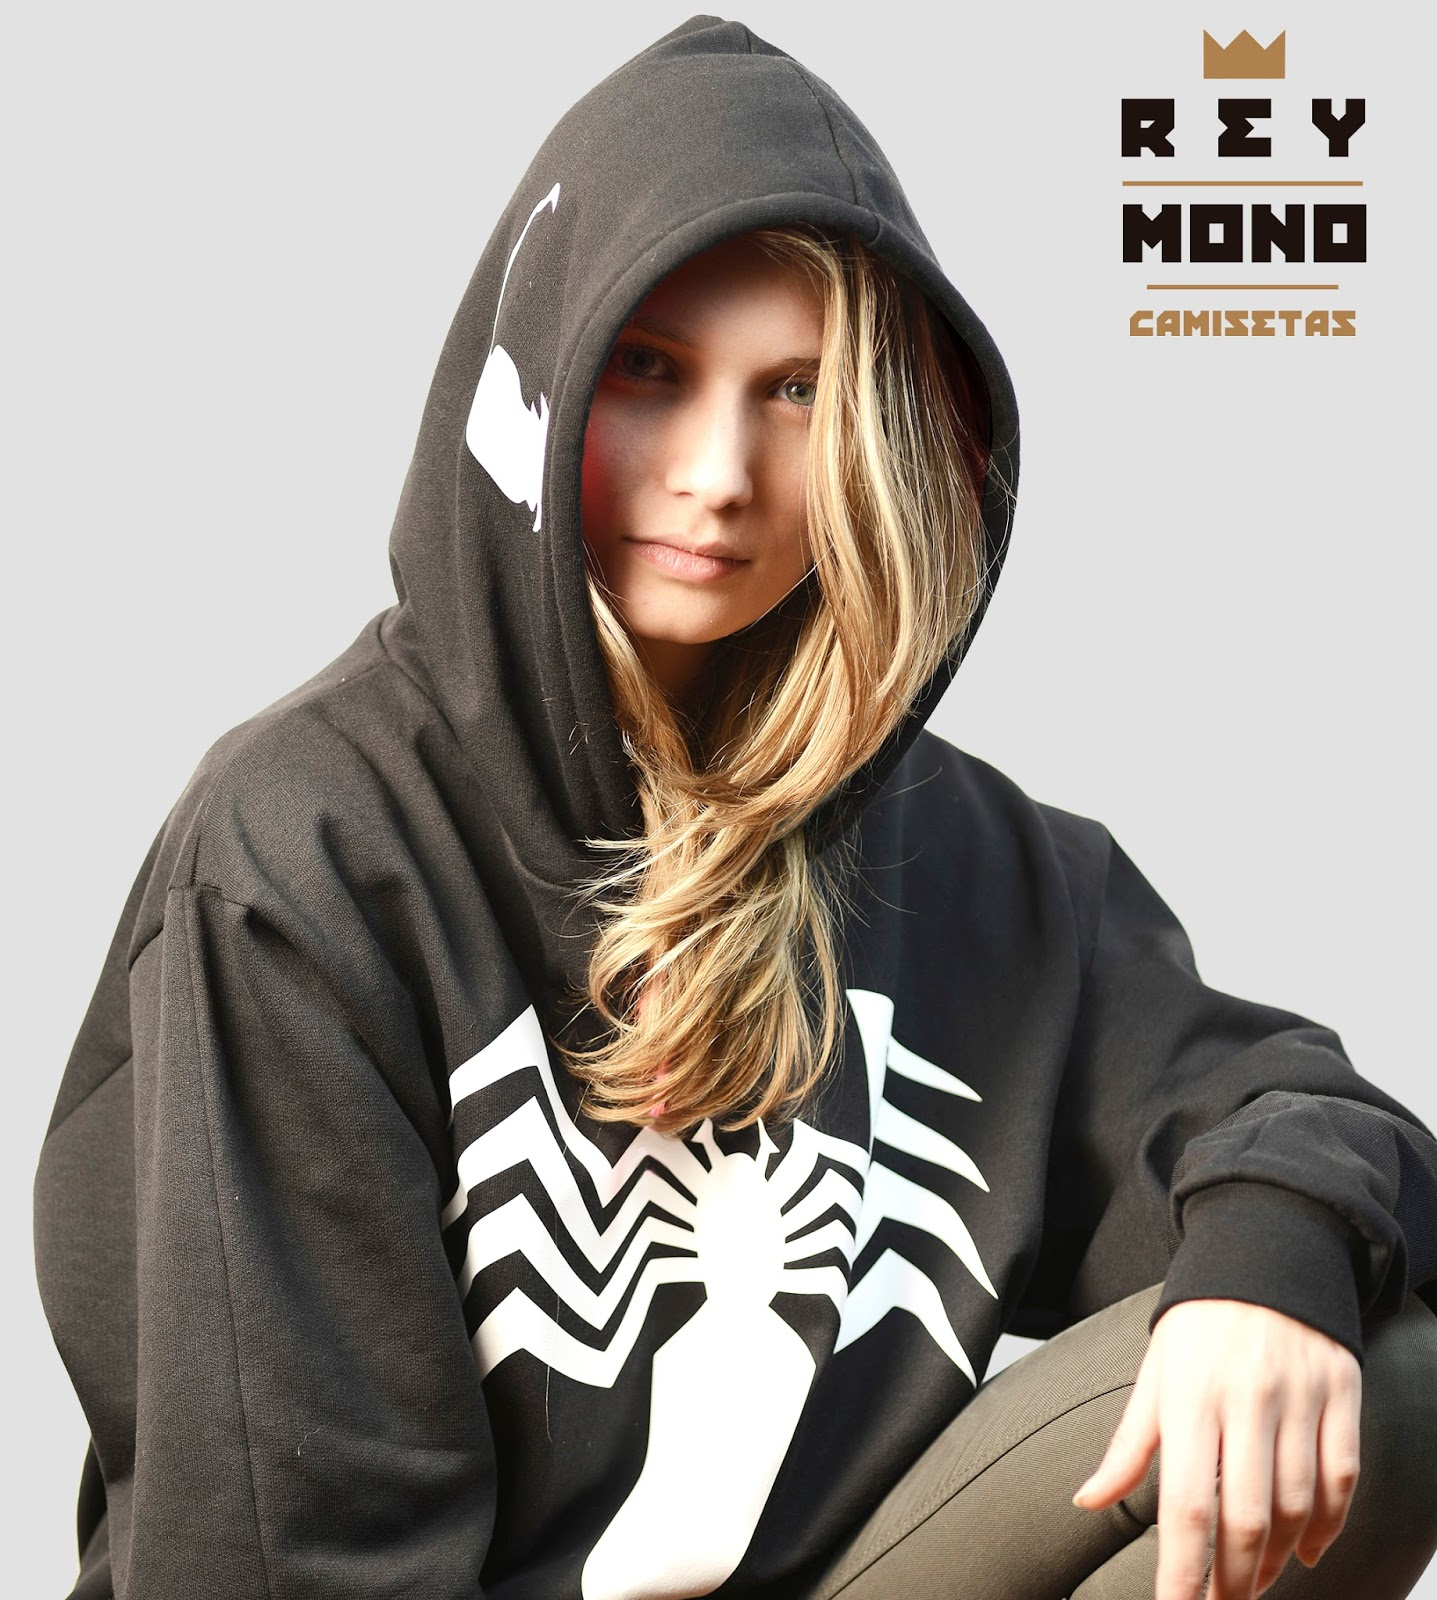 http://reymonocamisetas.com/epages/200d2a28-5f86-4af1-8858-c4bb6869fa73.sf/es_ES/?ObjectID=1887078&ViewAction=FacetedSearchProducts&SearchString=spiderman